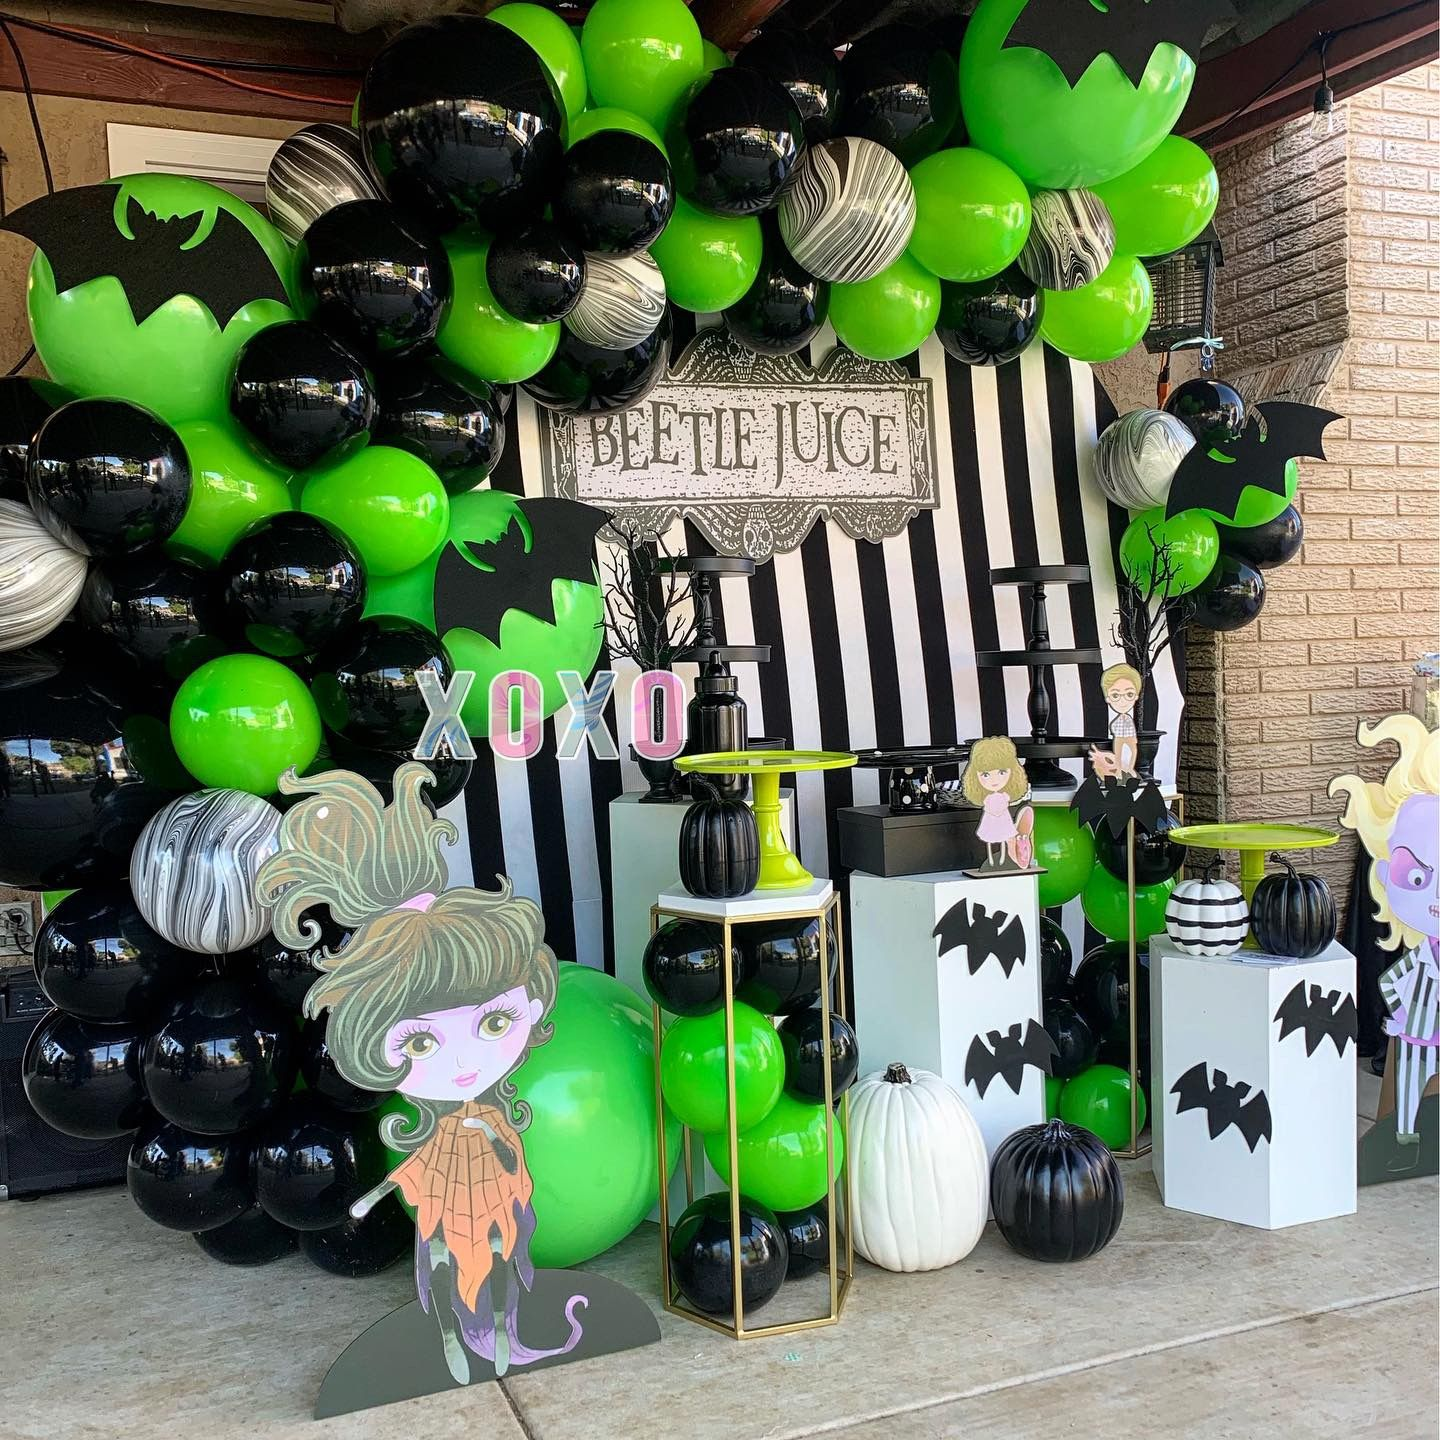 Beetlejuice Party Decorations Beetlejuice, Party